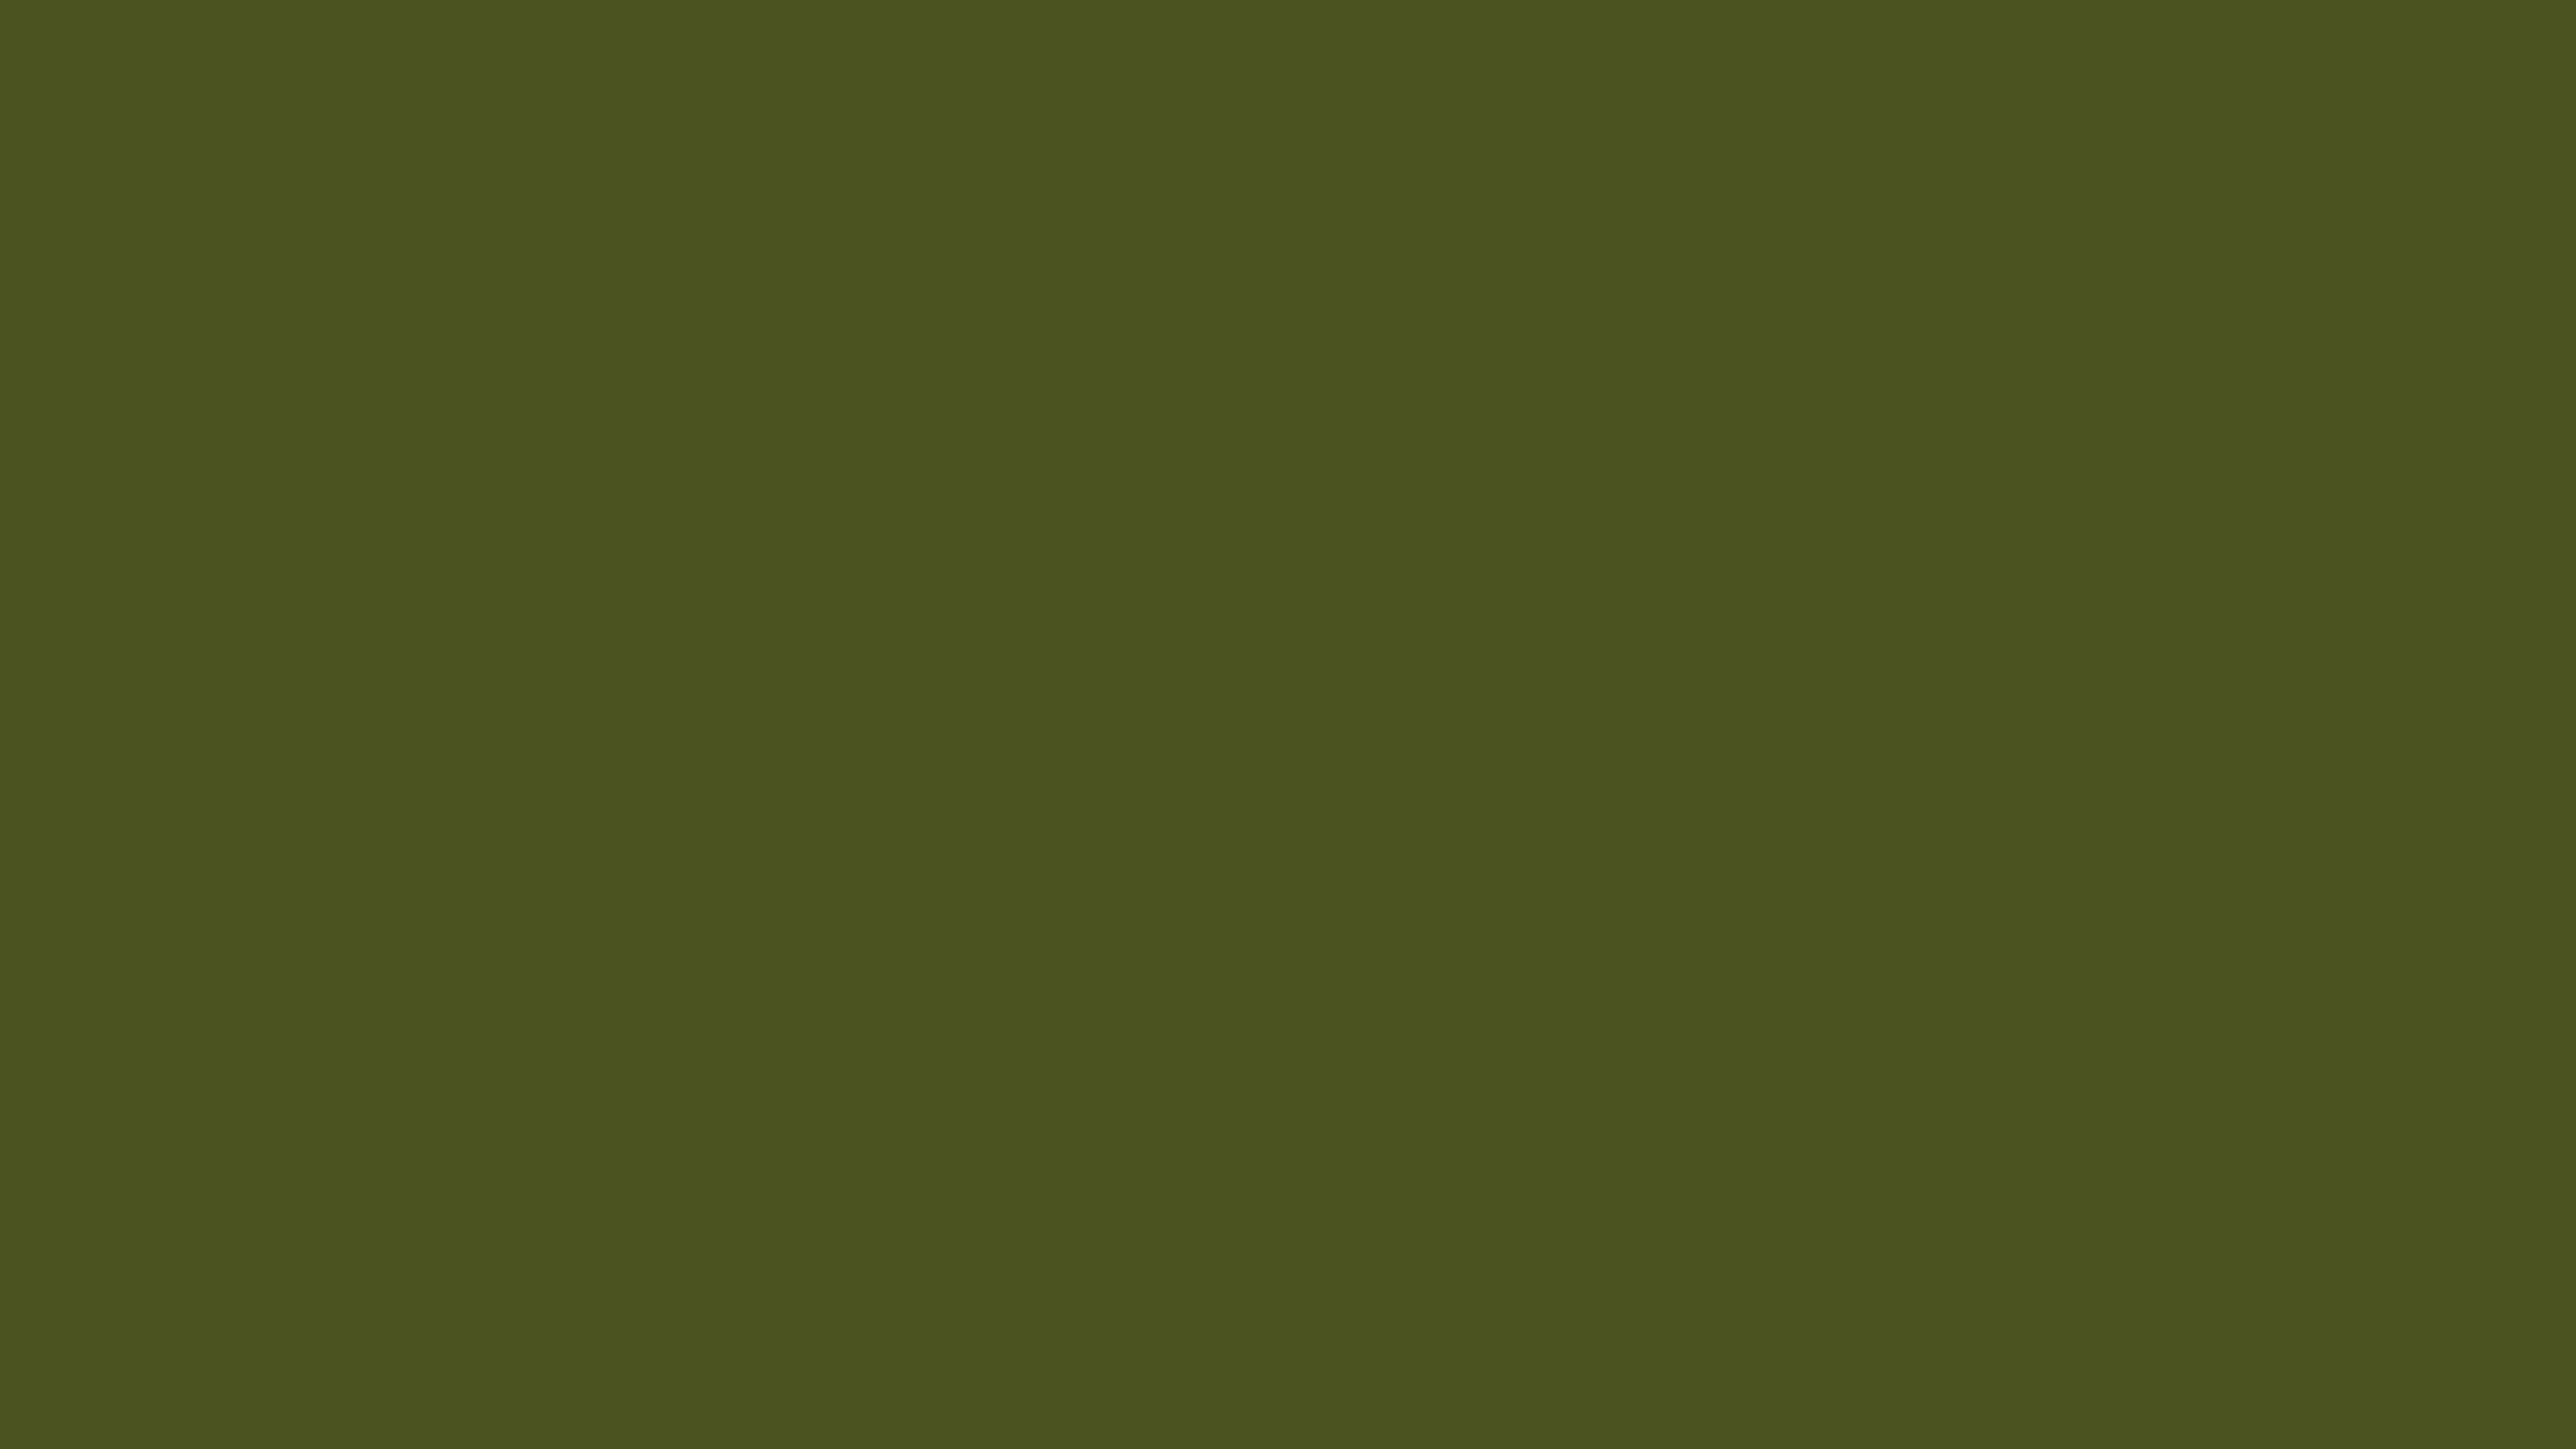 4096x2304 Army Green Solid Color Background 4096x2304